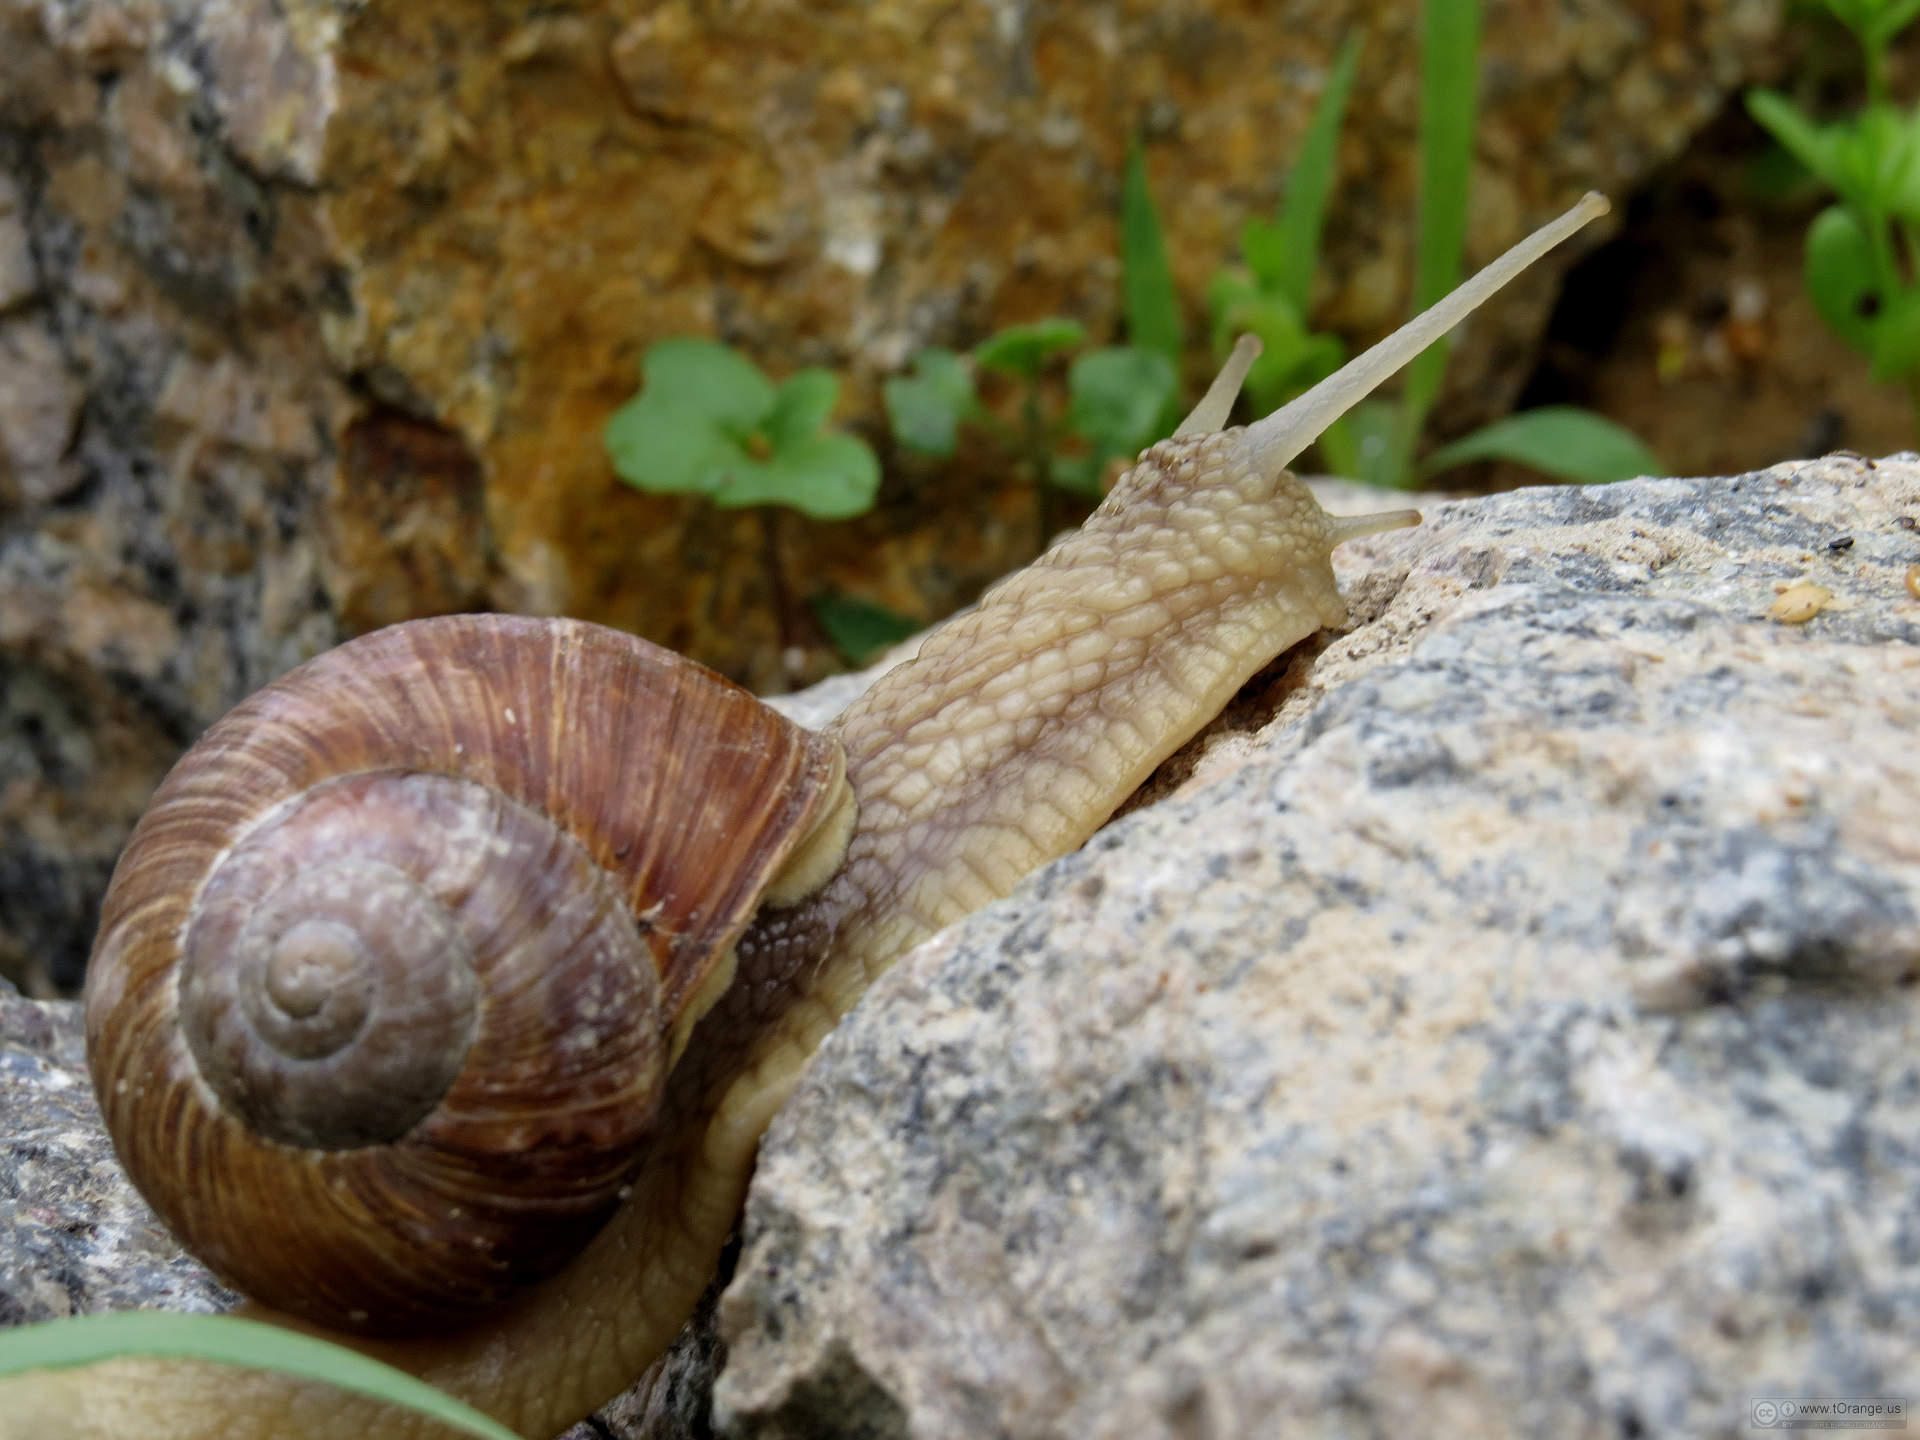 Don't Crush Those Snails: They May be Your Friends